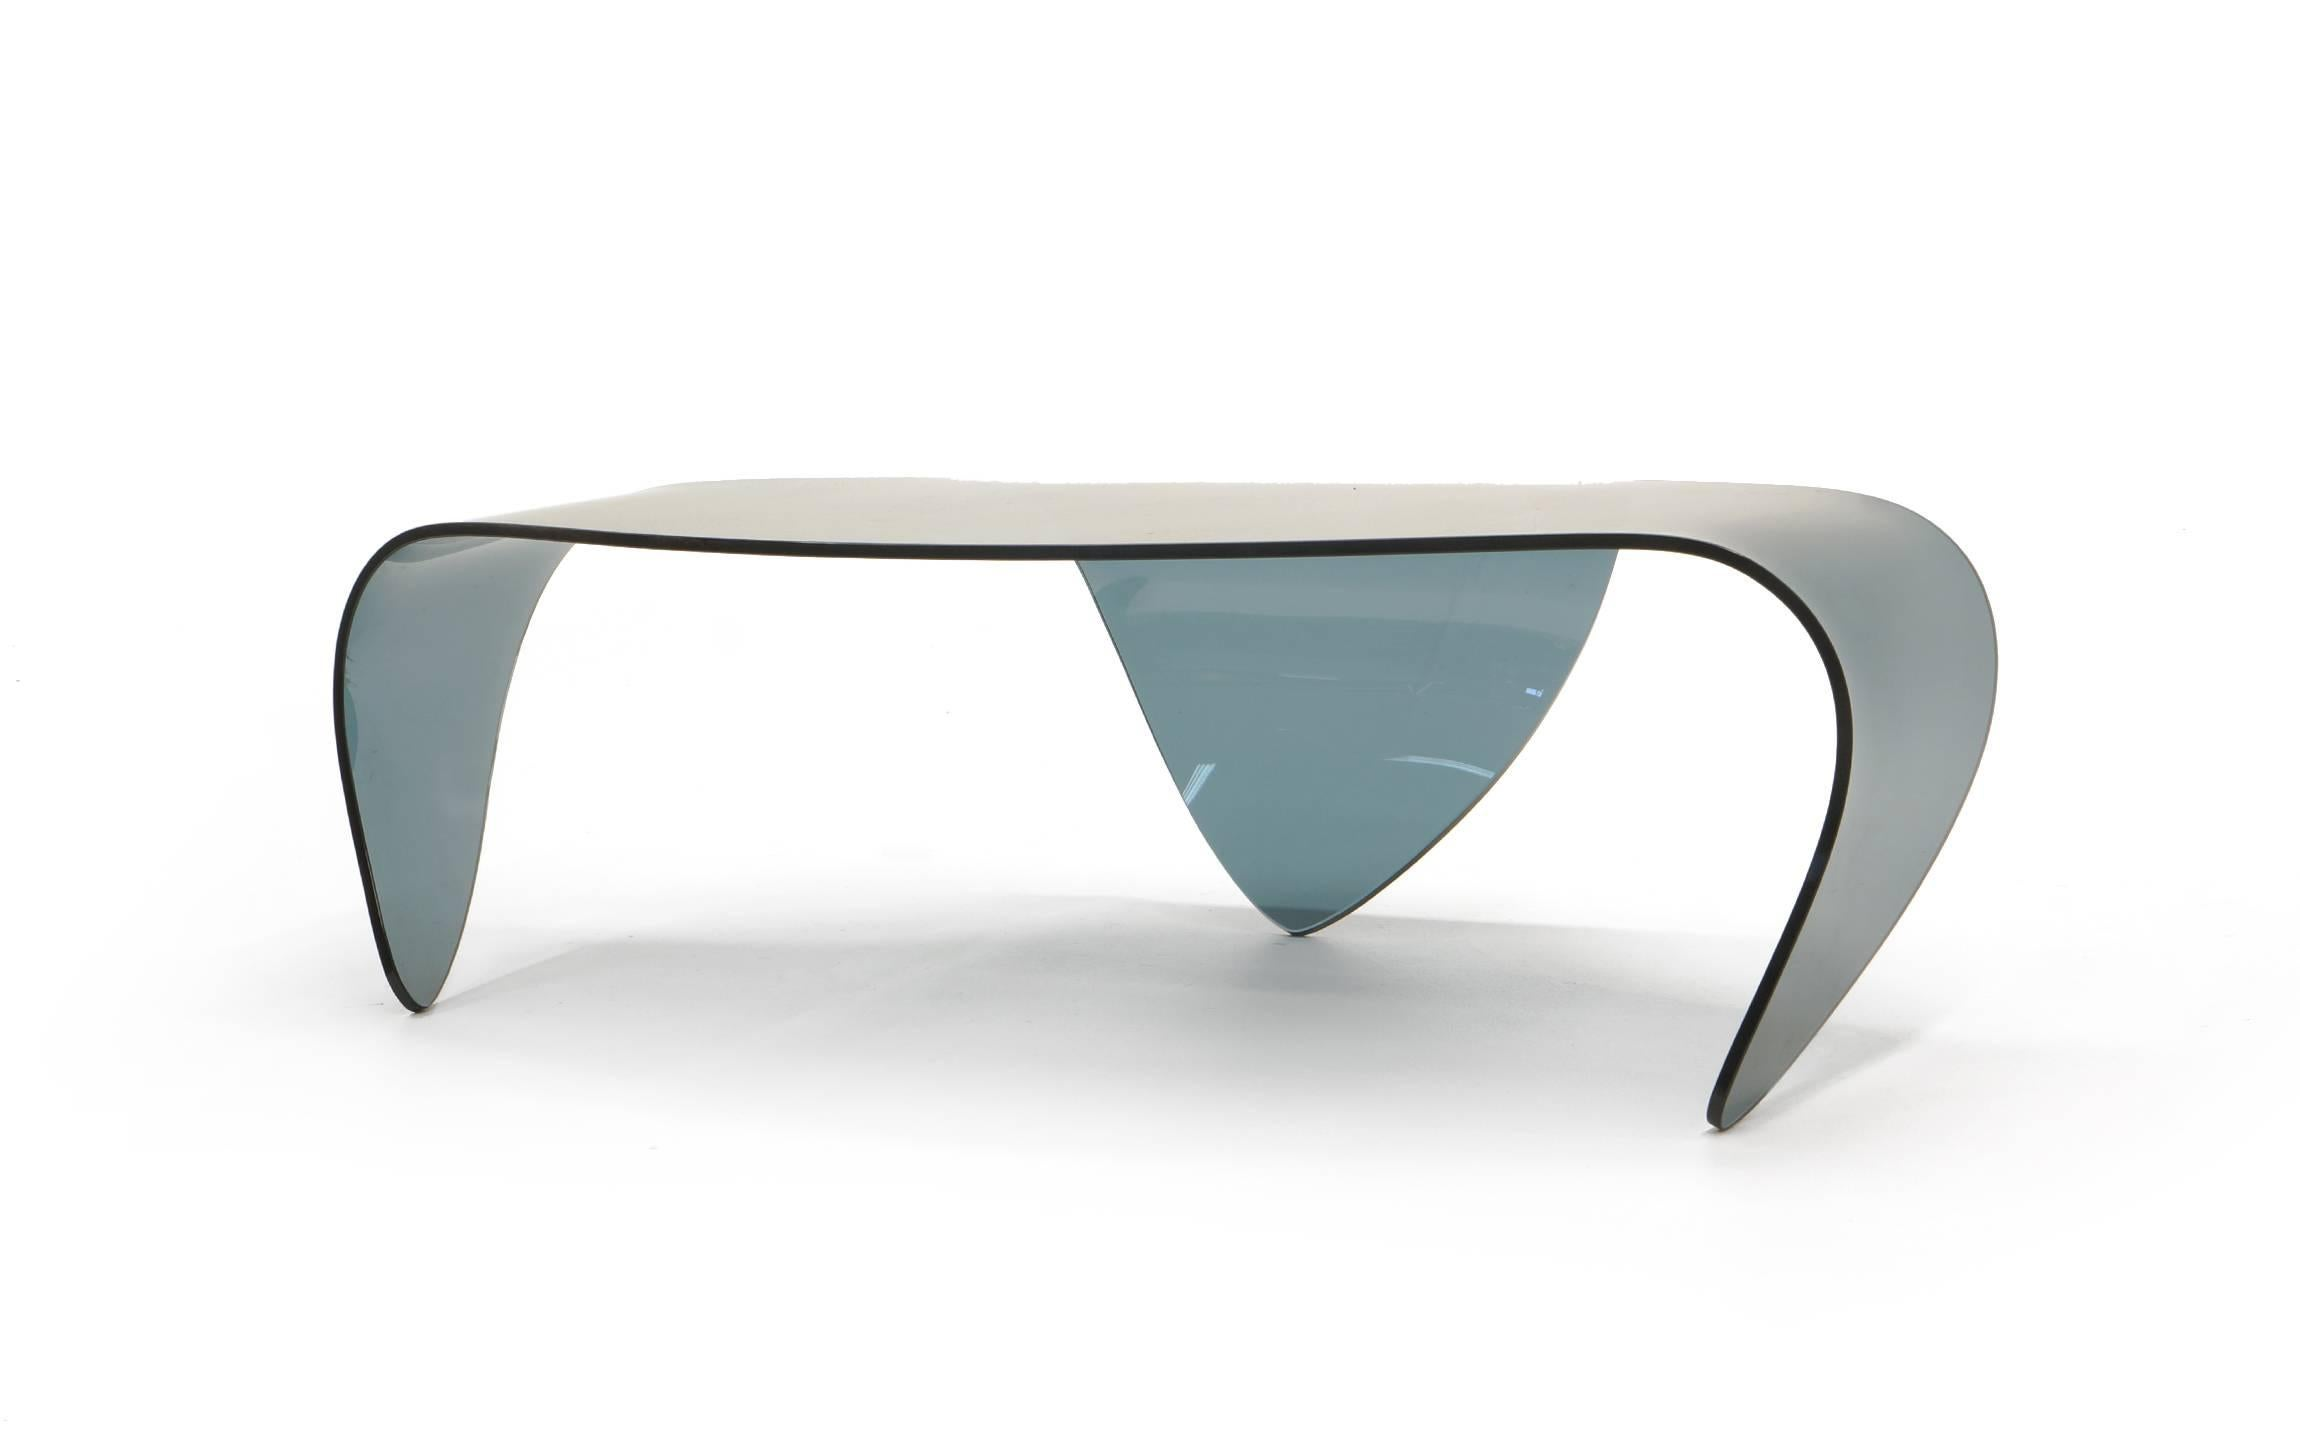 Glass form furniture Metal Modern All Glass Coffee Table Biomorphic Sculptural Bluegray Glass Form For Sale 1stdibs All Glass Coffee Table Biomorphic Sculptural Bluegray Glass Form